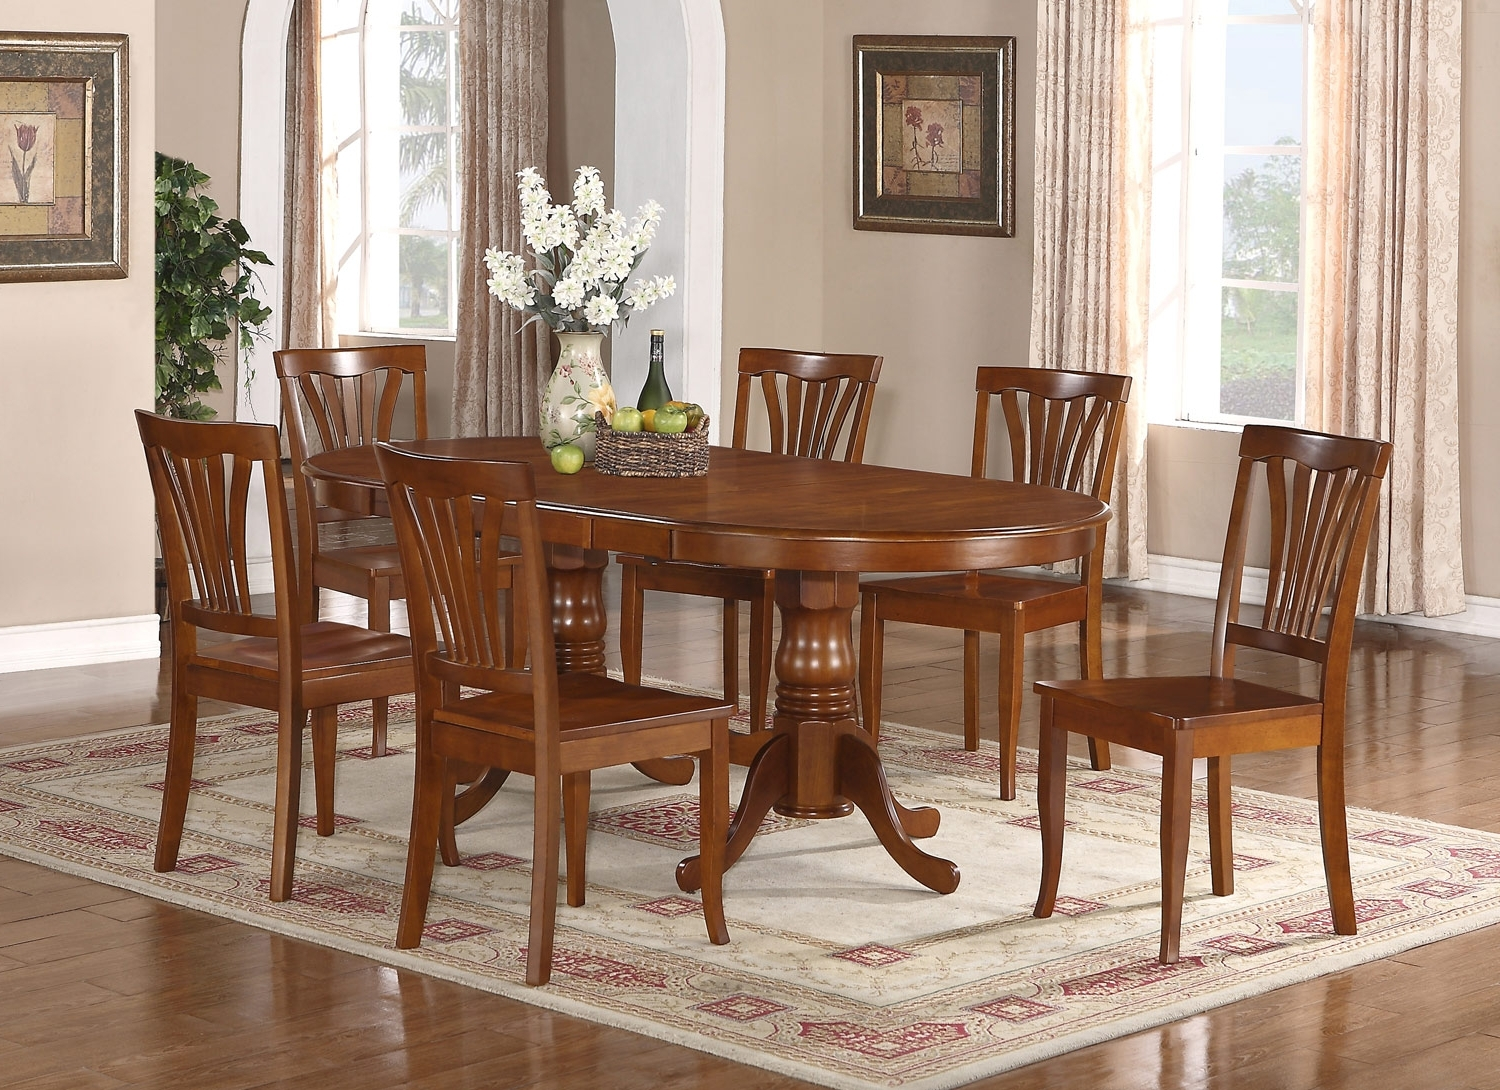 Fashionable Dining Table Sets With 6 Chairs Intended For 7Pc Oval Newton Dining Room Set Extension Leaf Table 6 Chairs  (View 14 of 25)